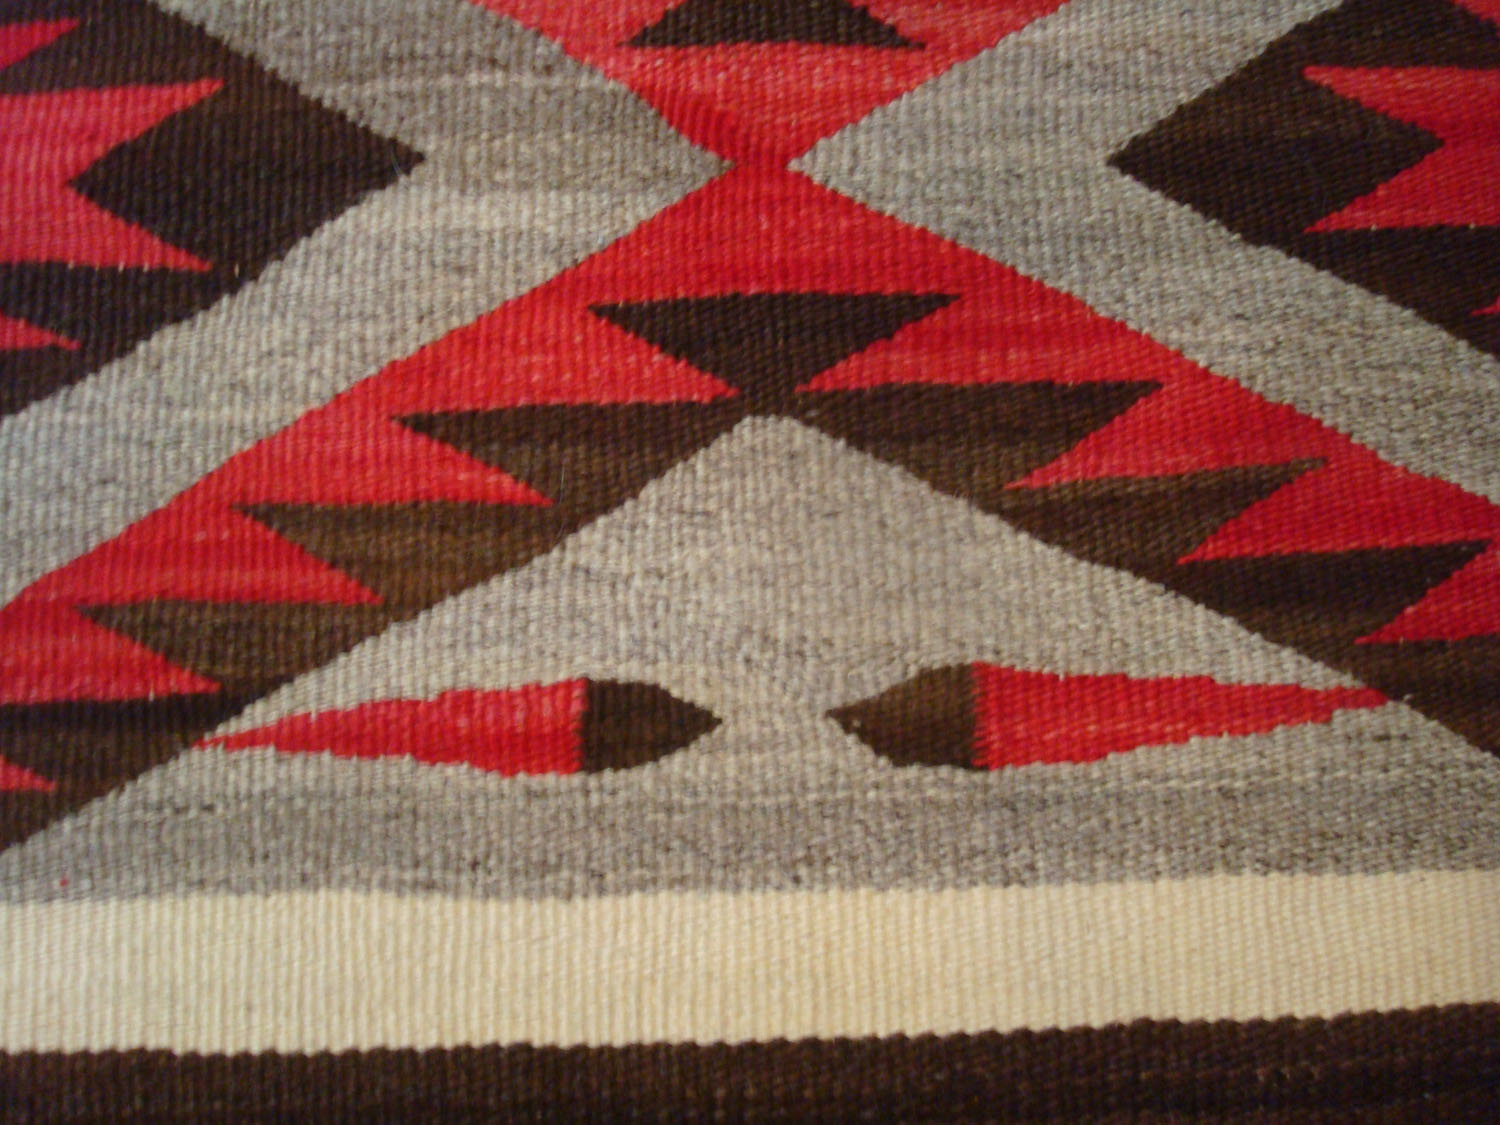 Native American Indian And Navajo Rugs And Textiles At